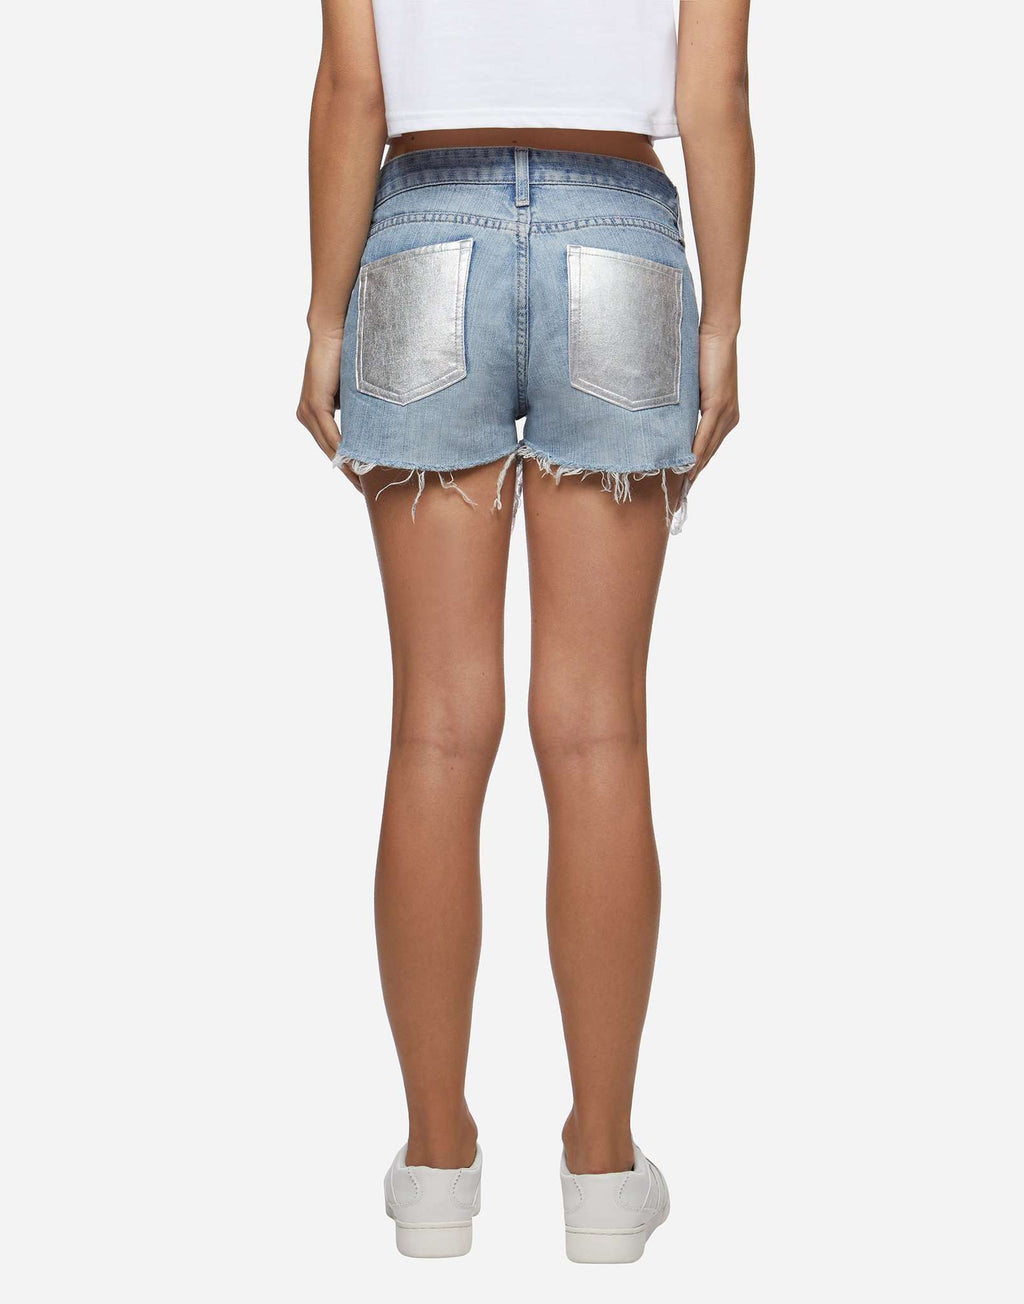 Shorts Denim scuri tasca iridescente